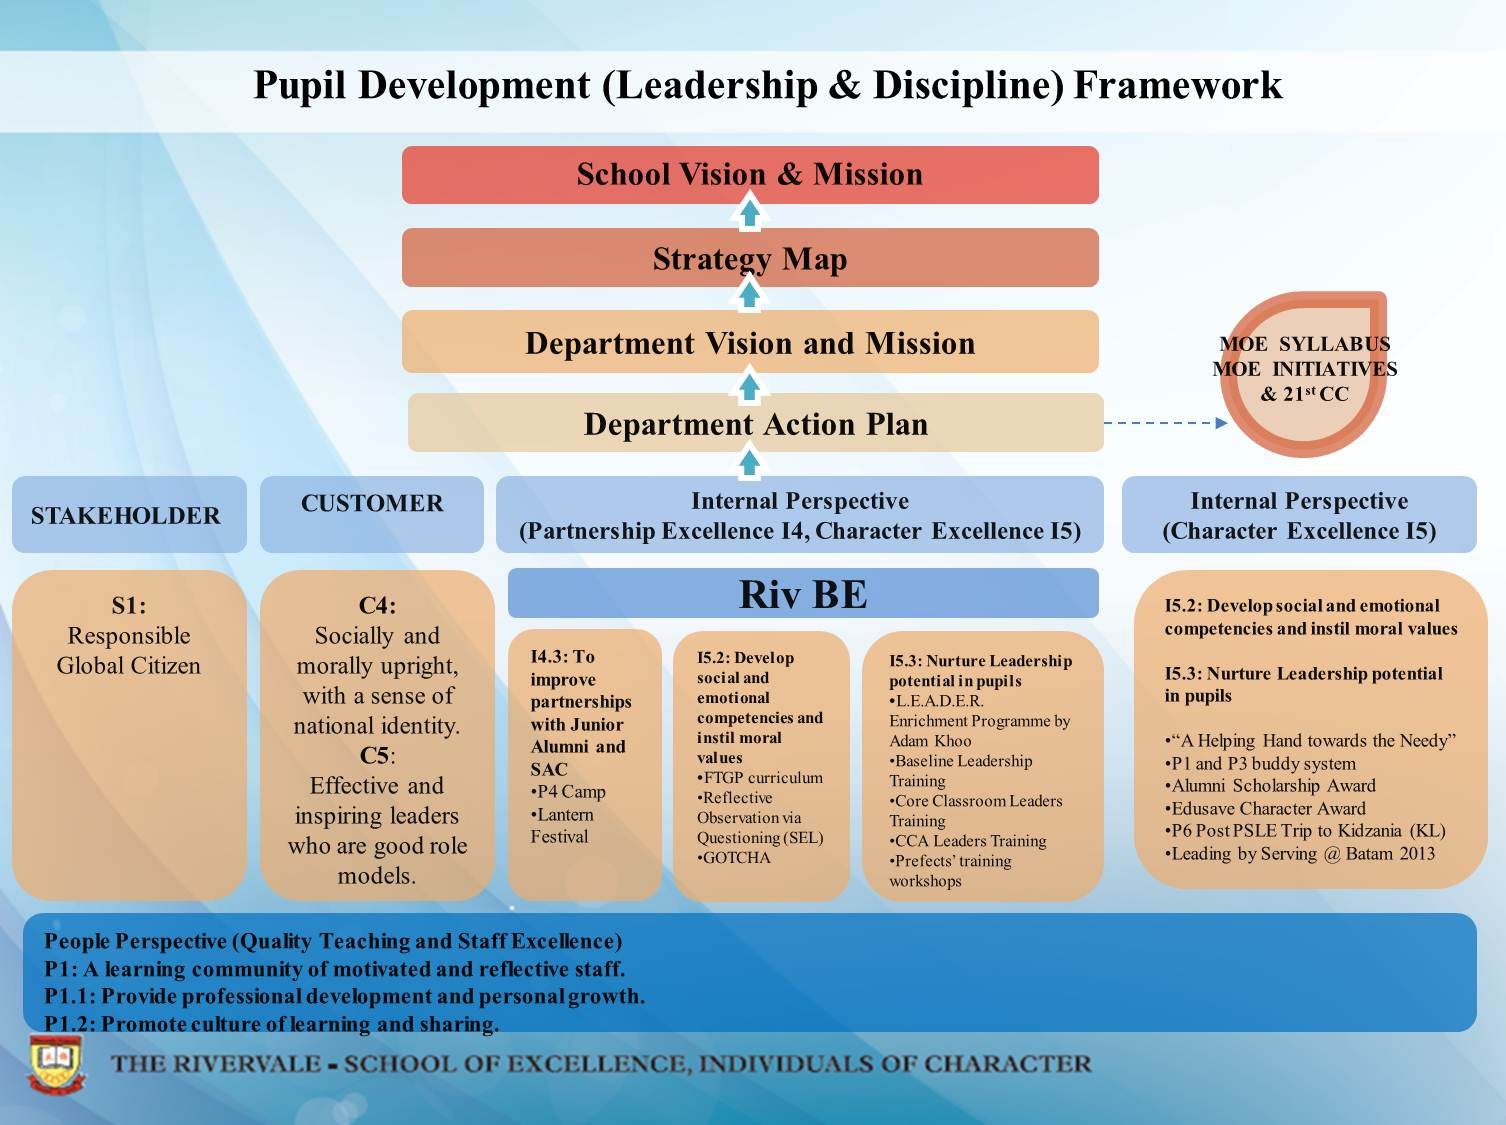 Pupil Development Framework